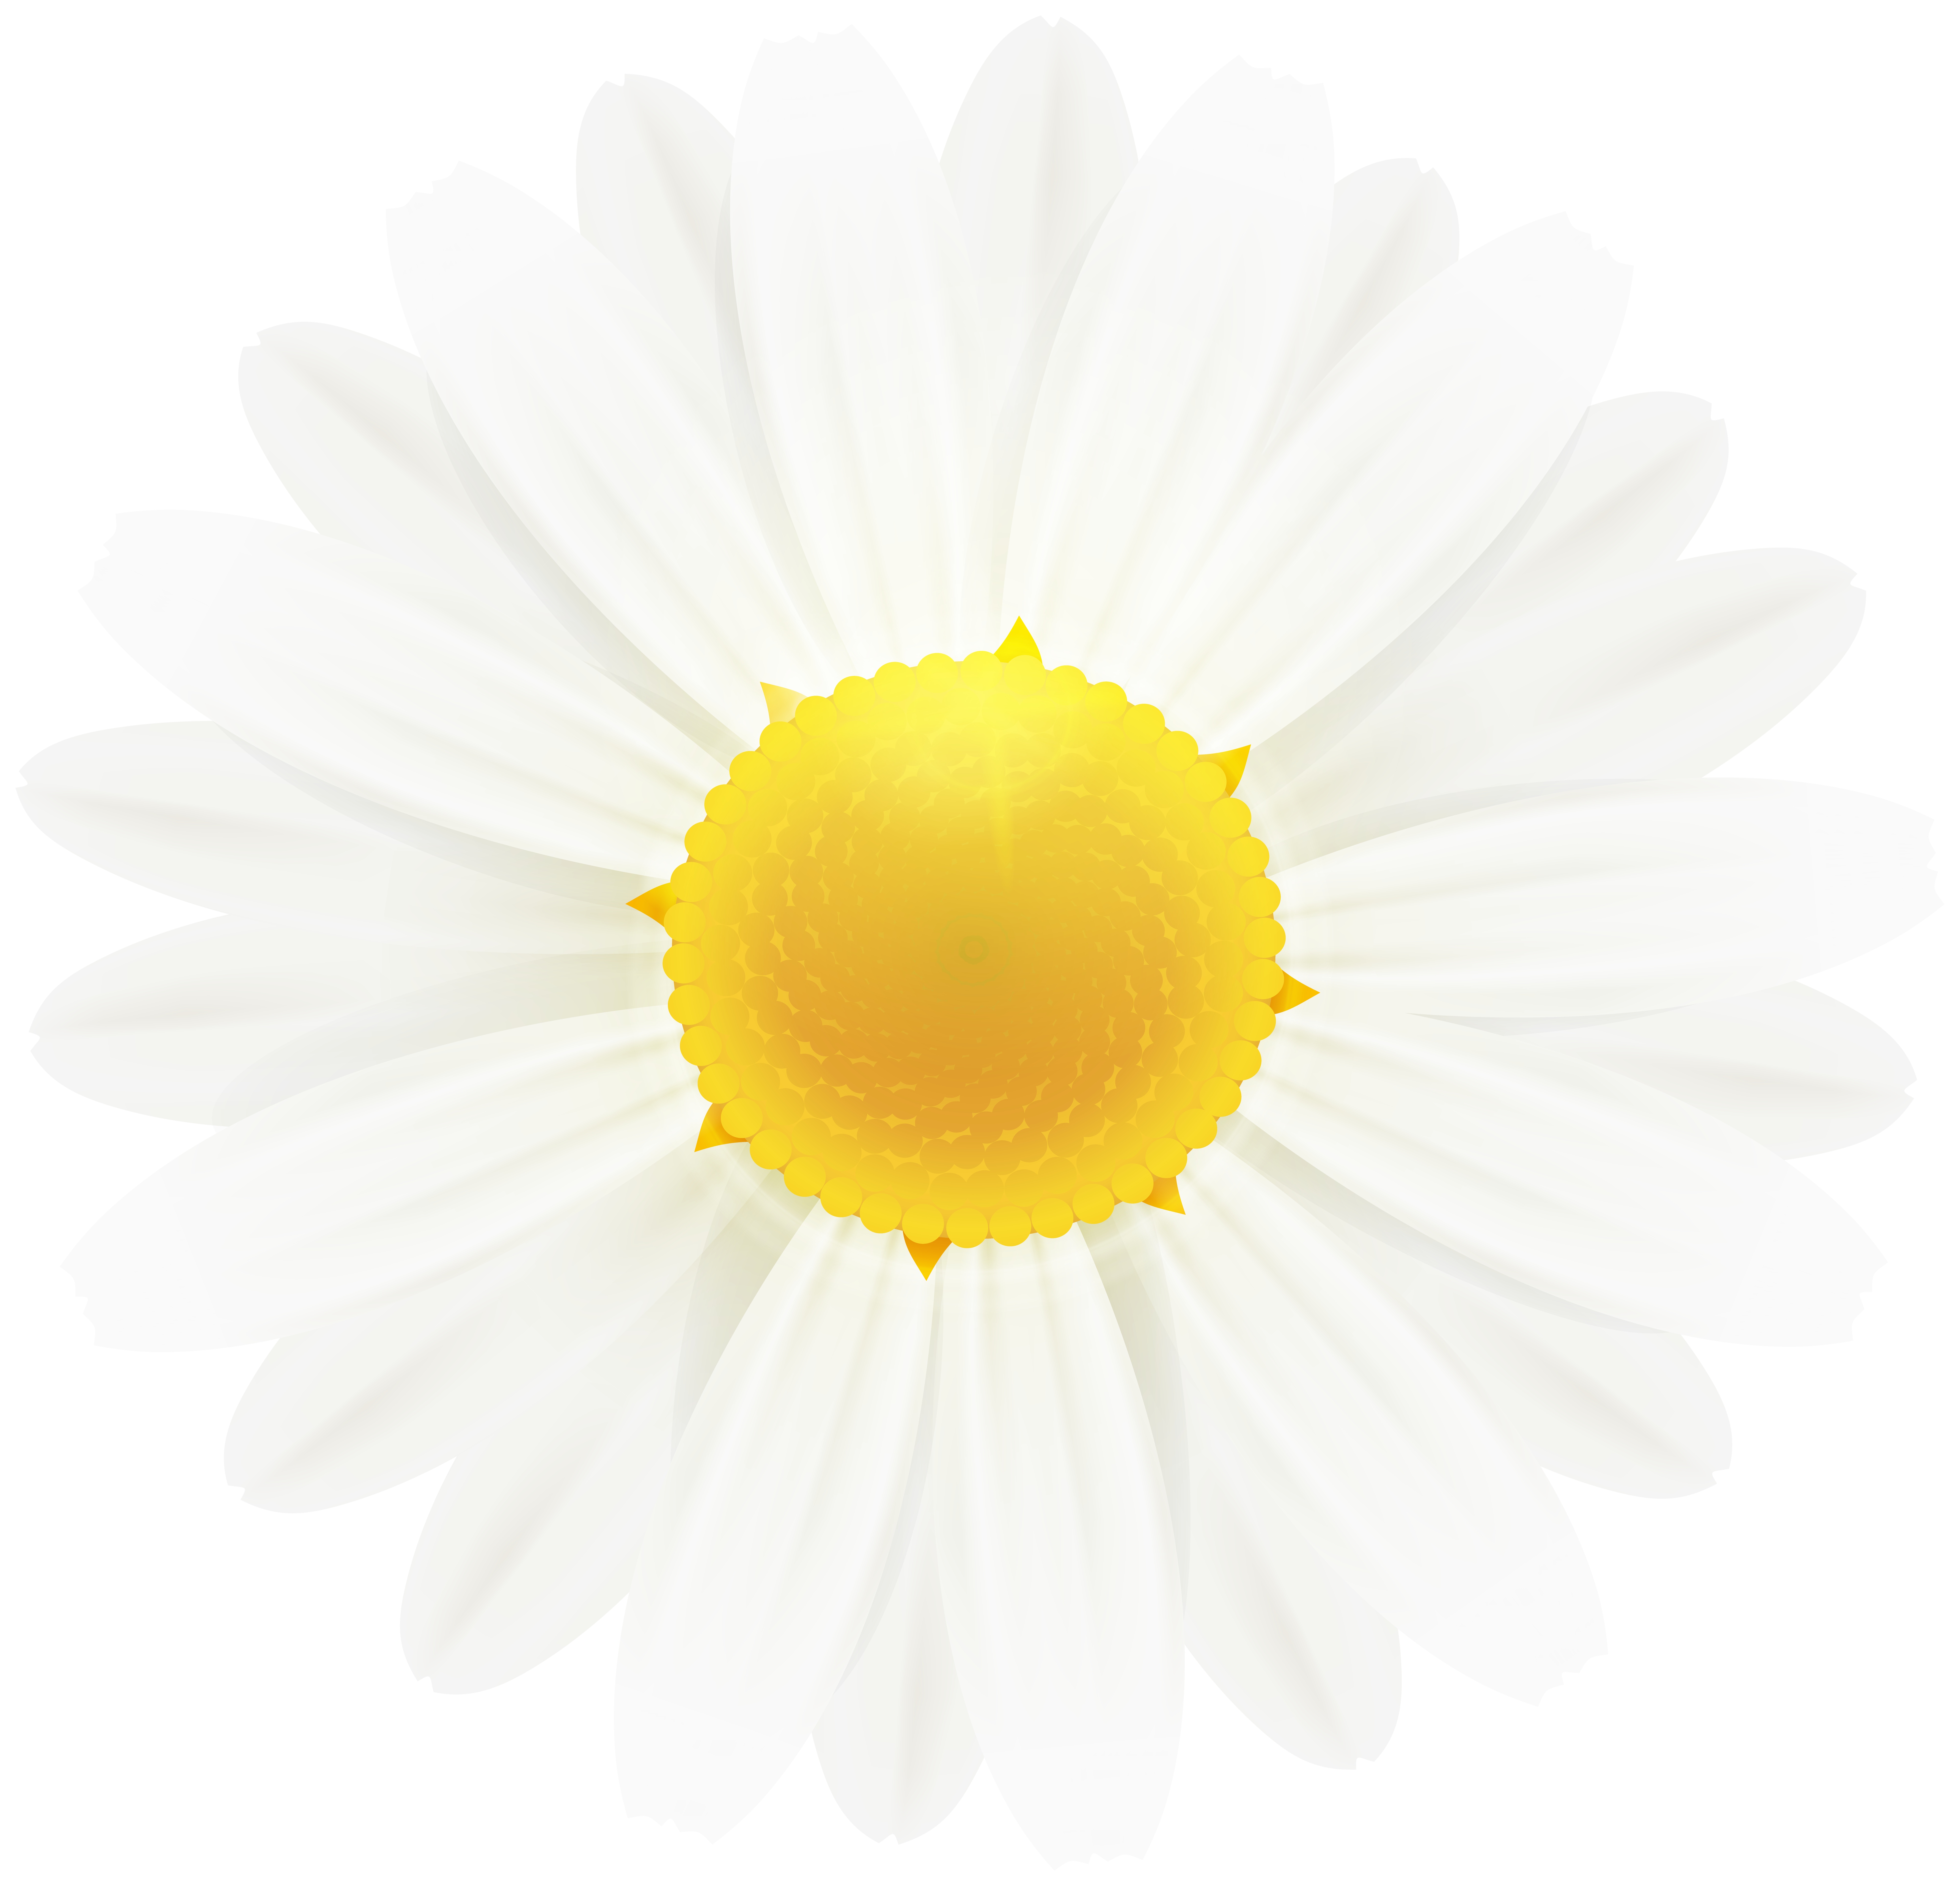 White daisy clipart free White Daisy Flower Clipart Image | Gallery Yopriceville ... free